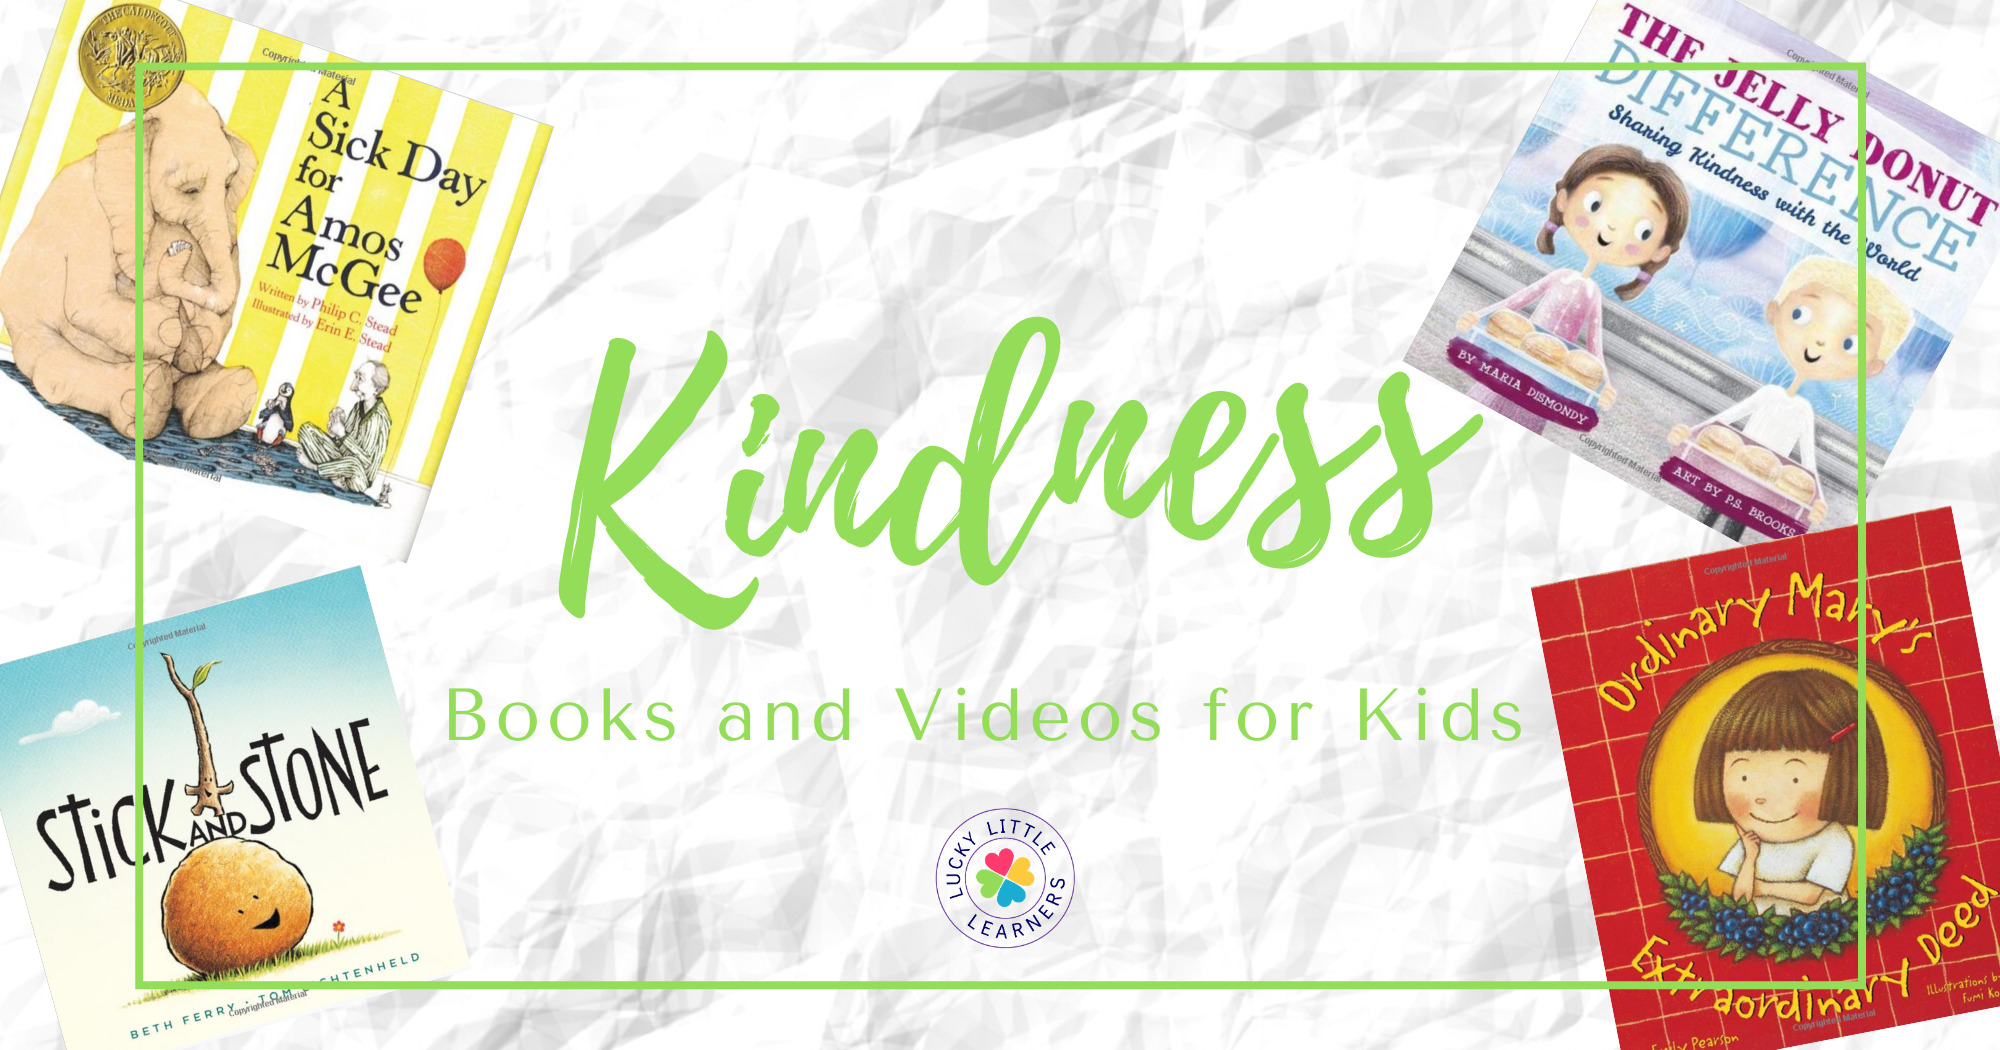 Must-Have Children's Books and Videos About Kindness